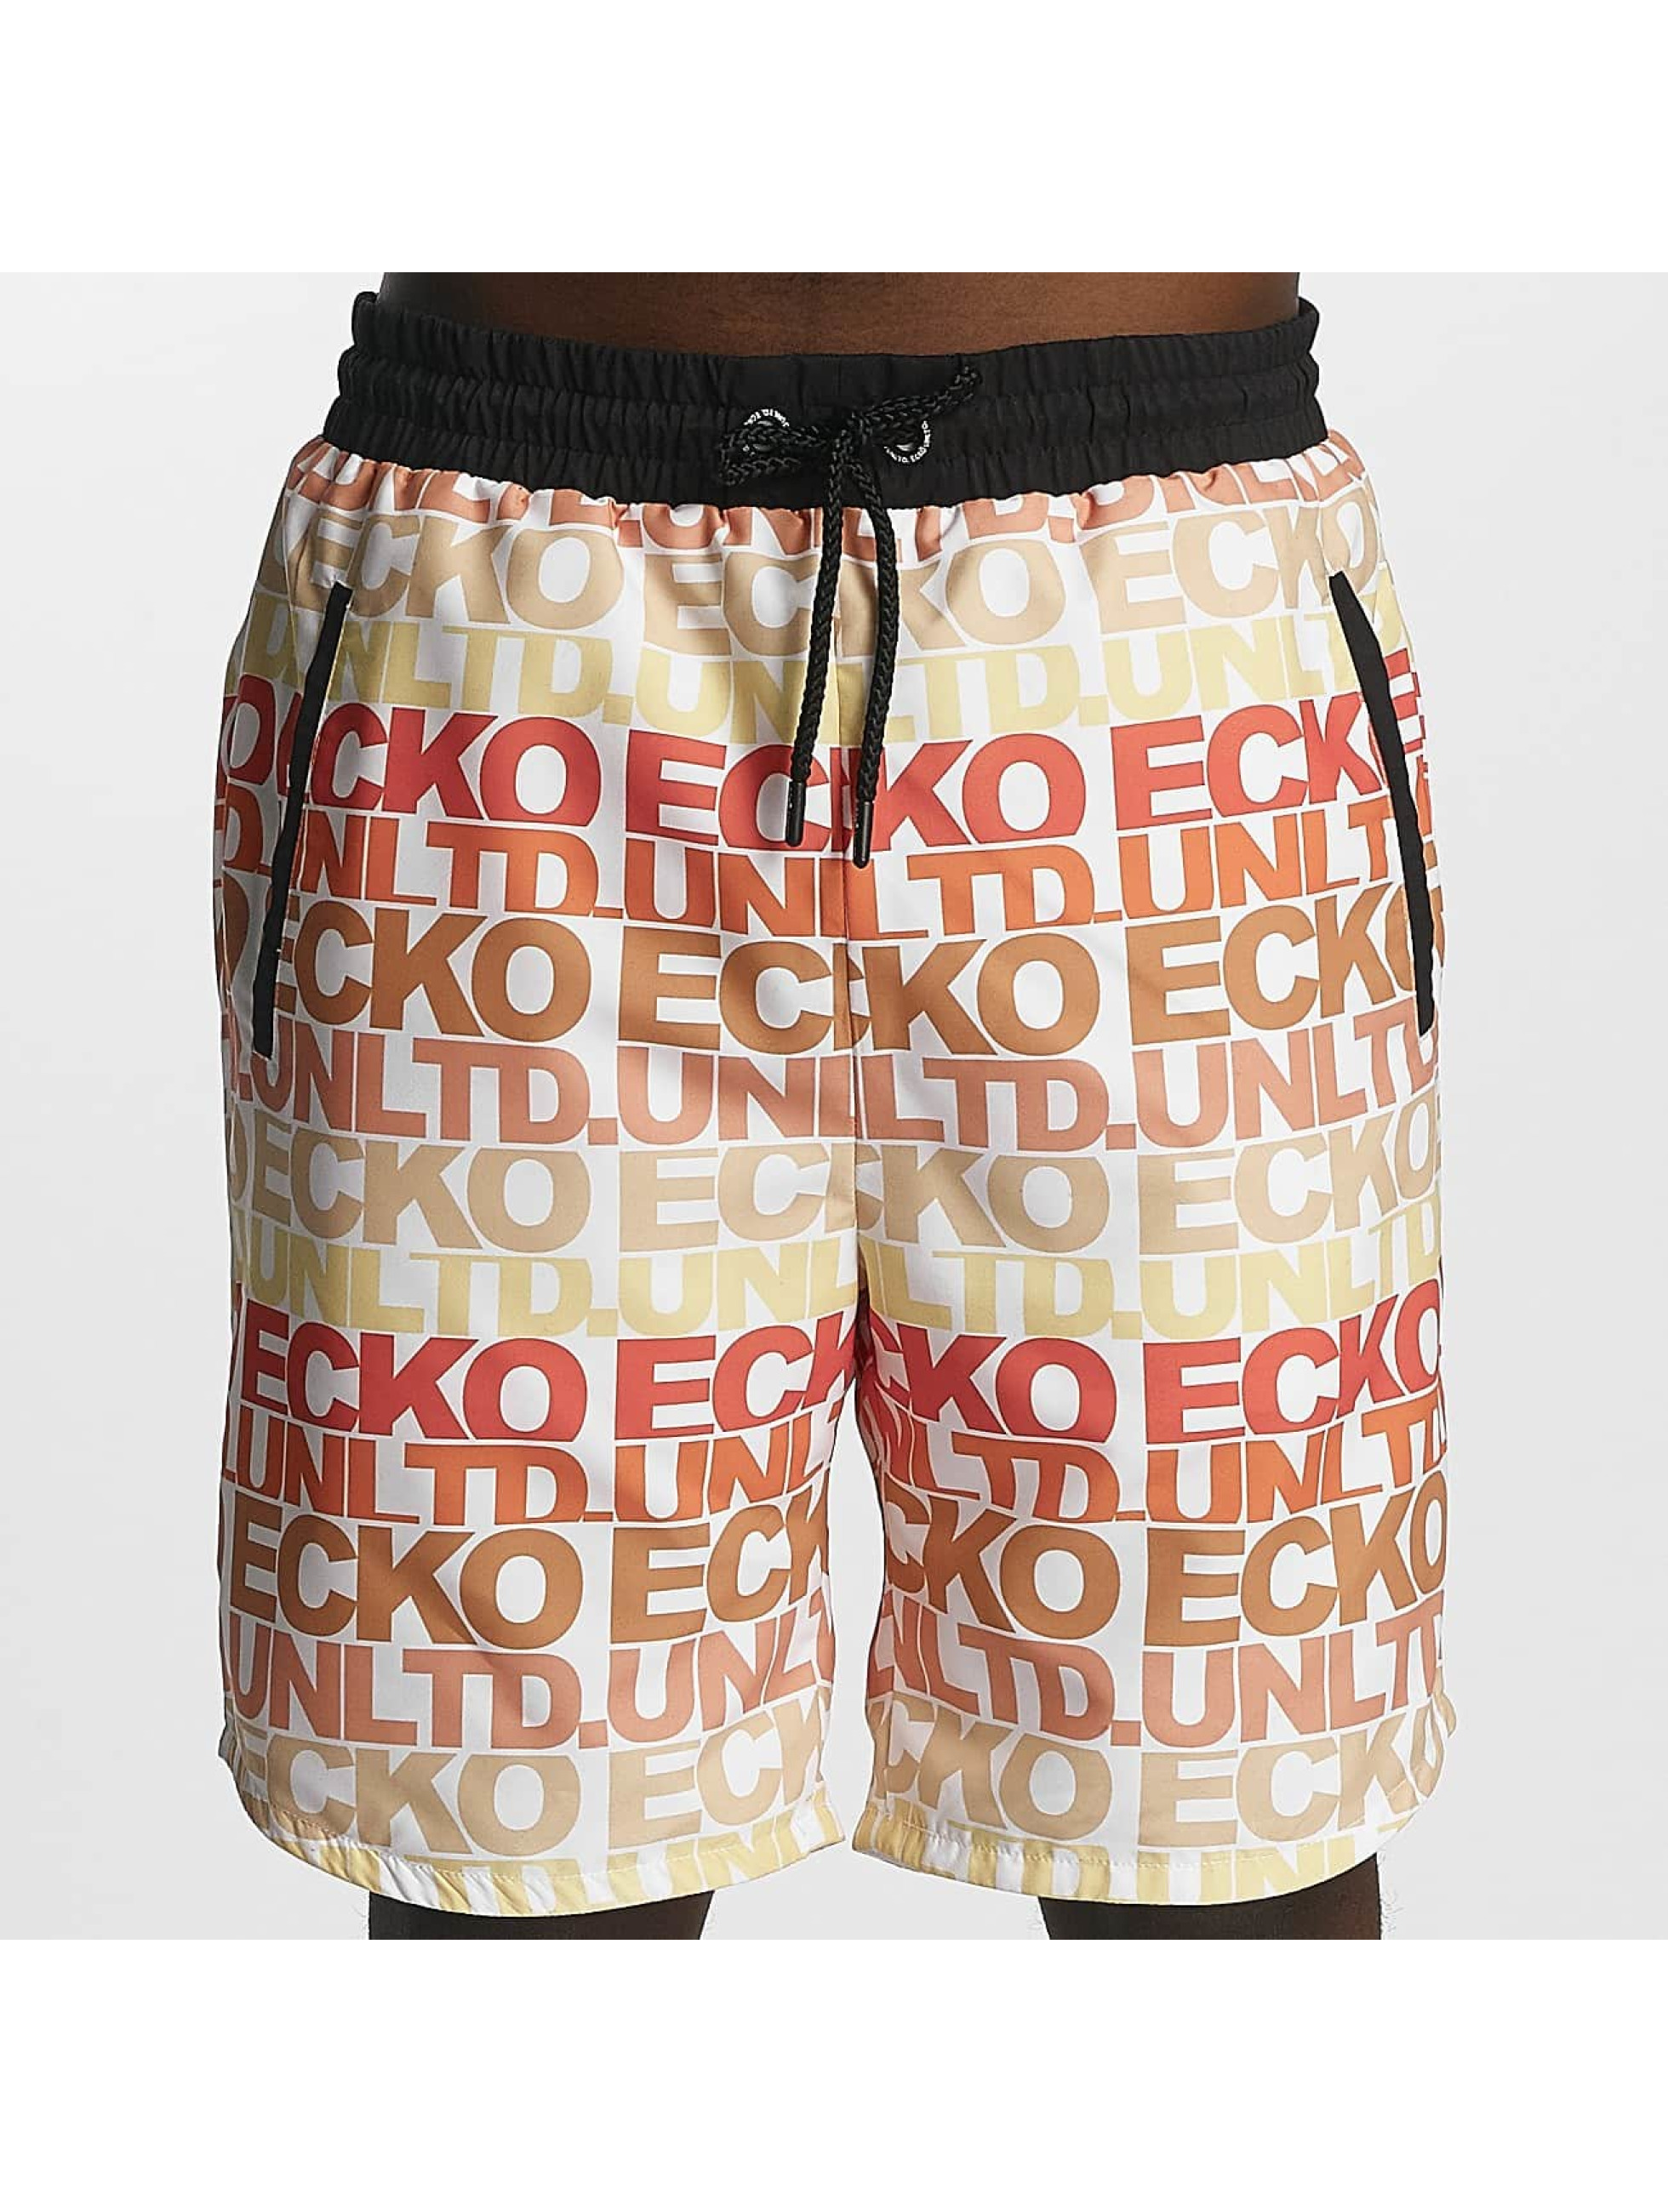 Ecko Unltd. / Short TroudÀrgent in orange 6XL